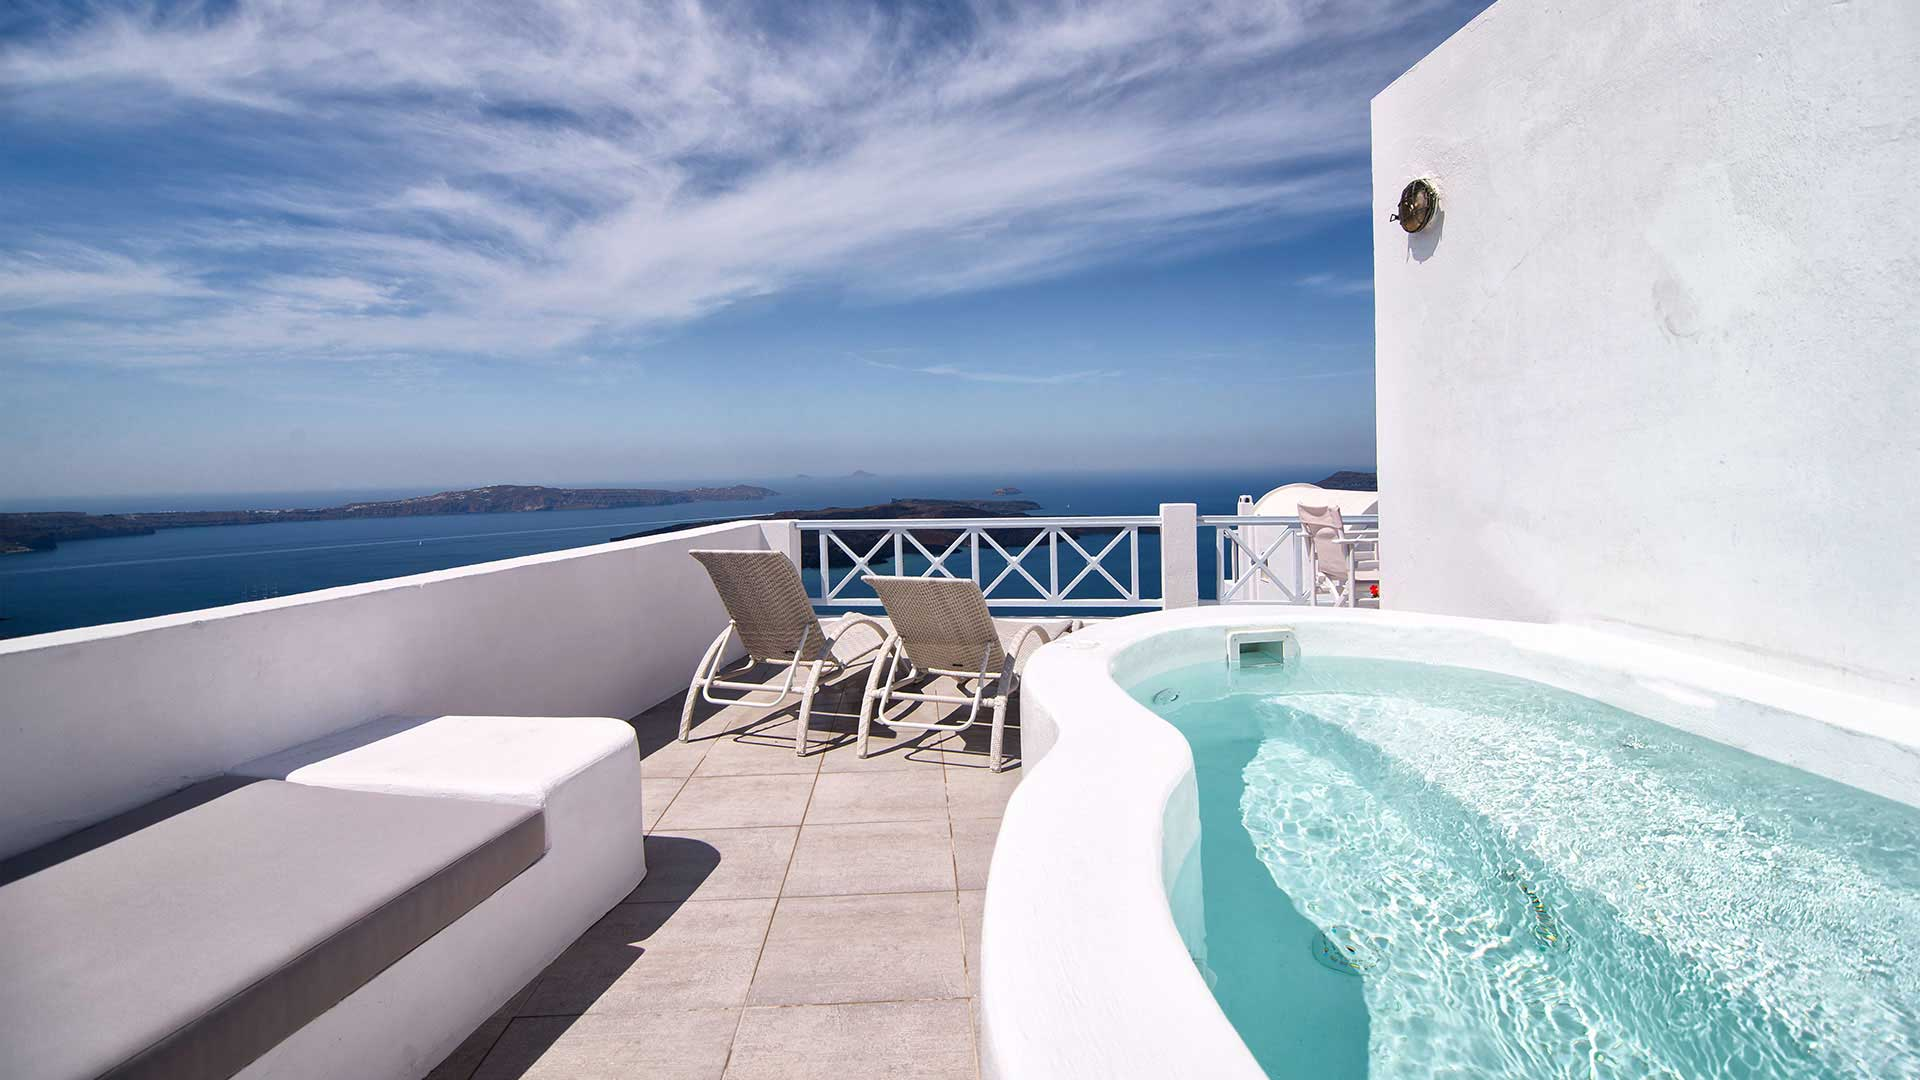 Santorini honeymoon Suite with jacuzzi | Pool with view Imerovigli and Caldera